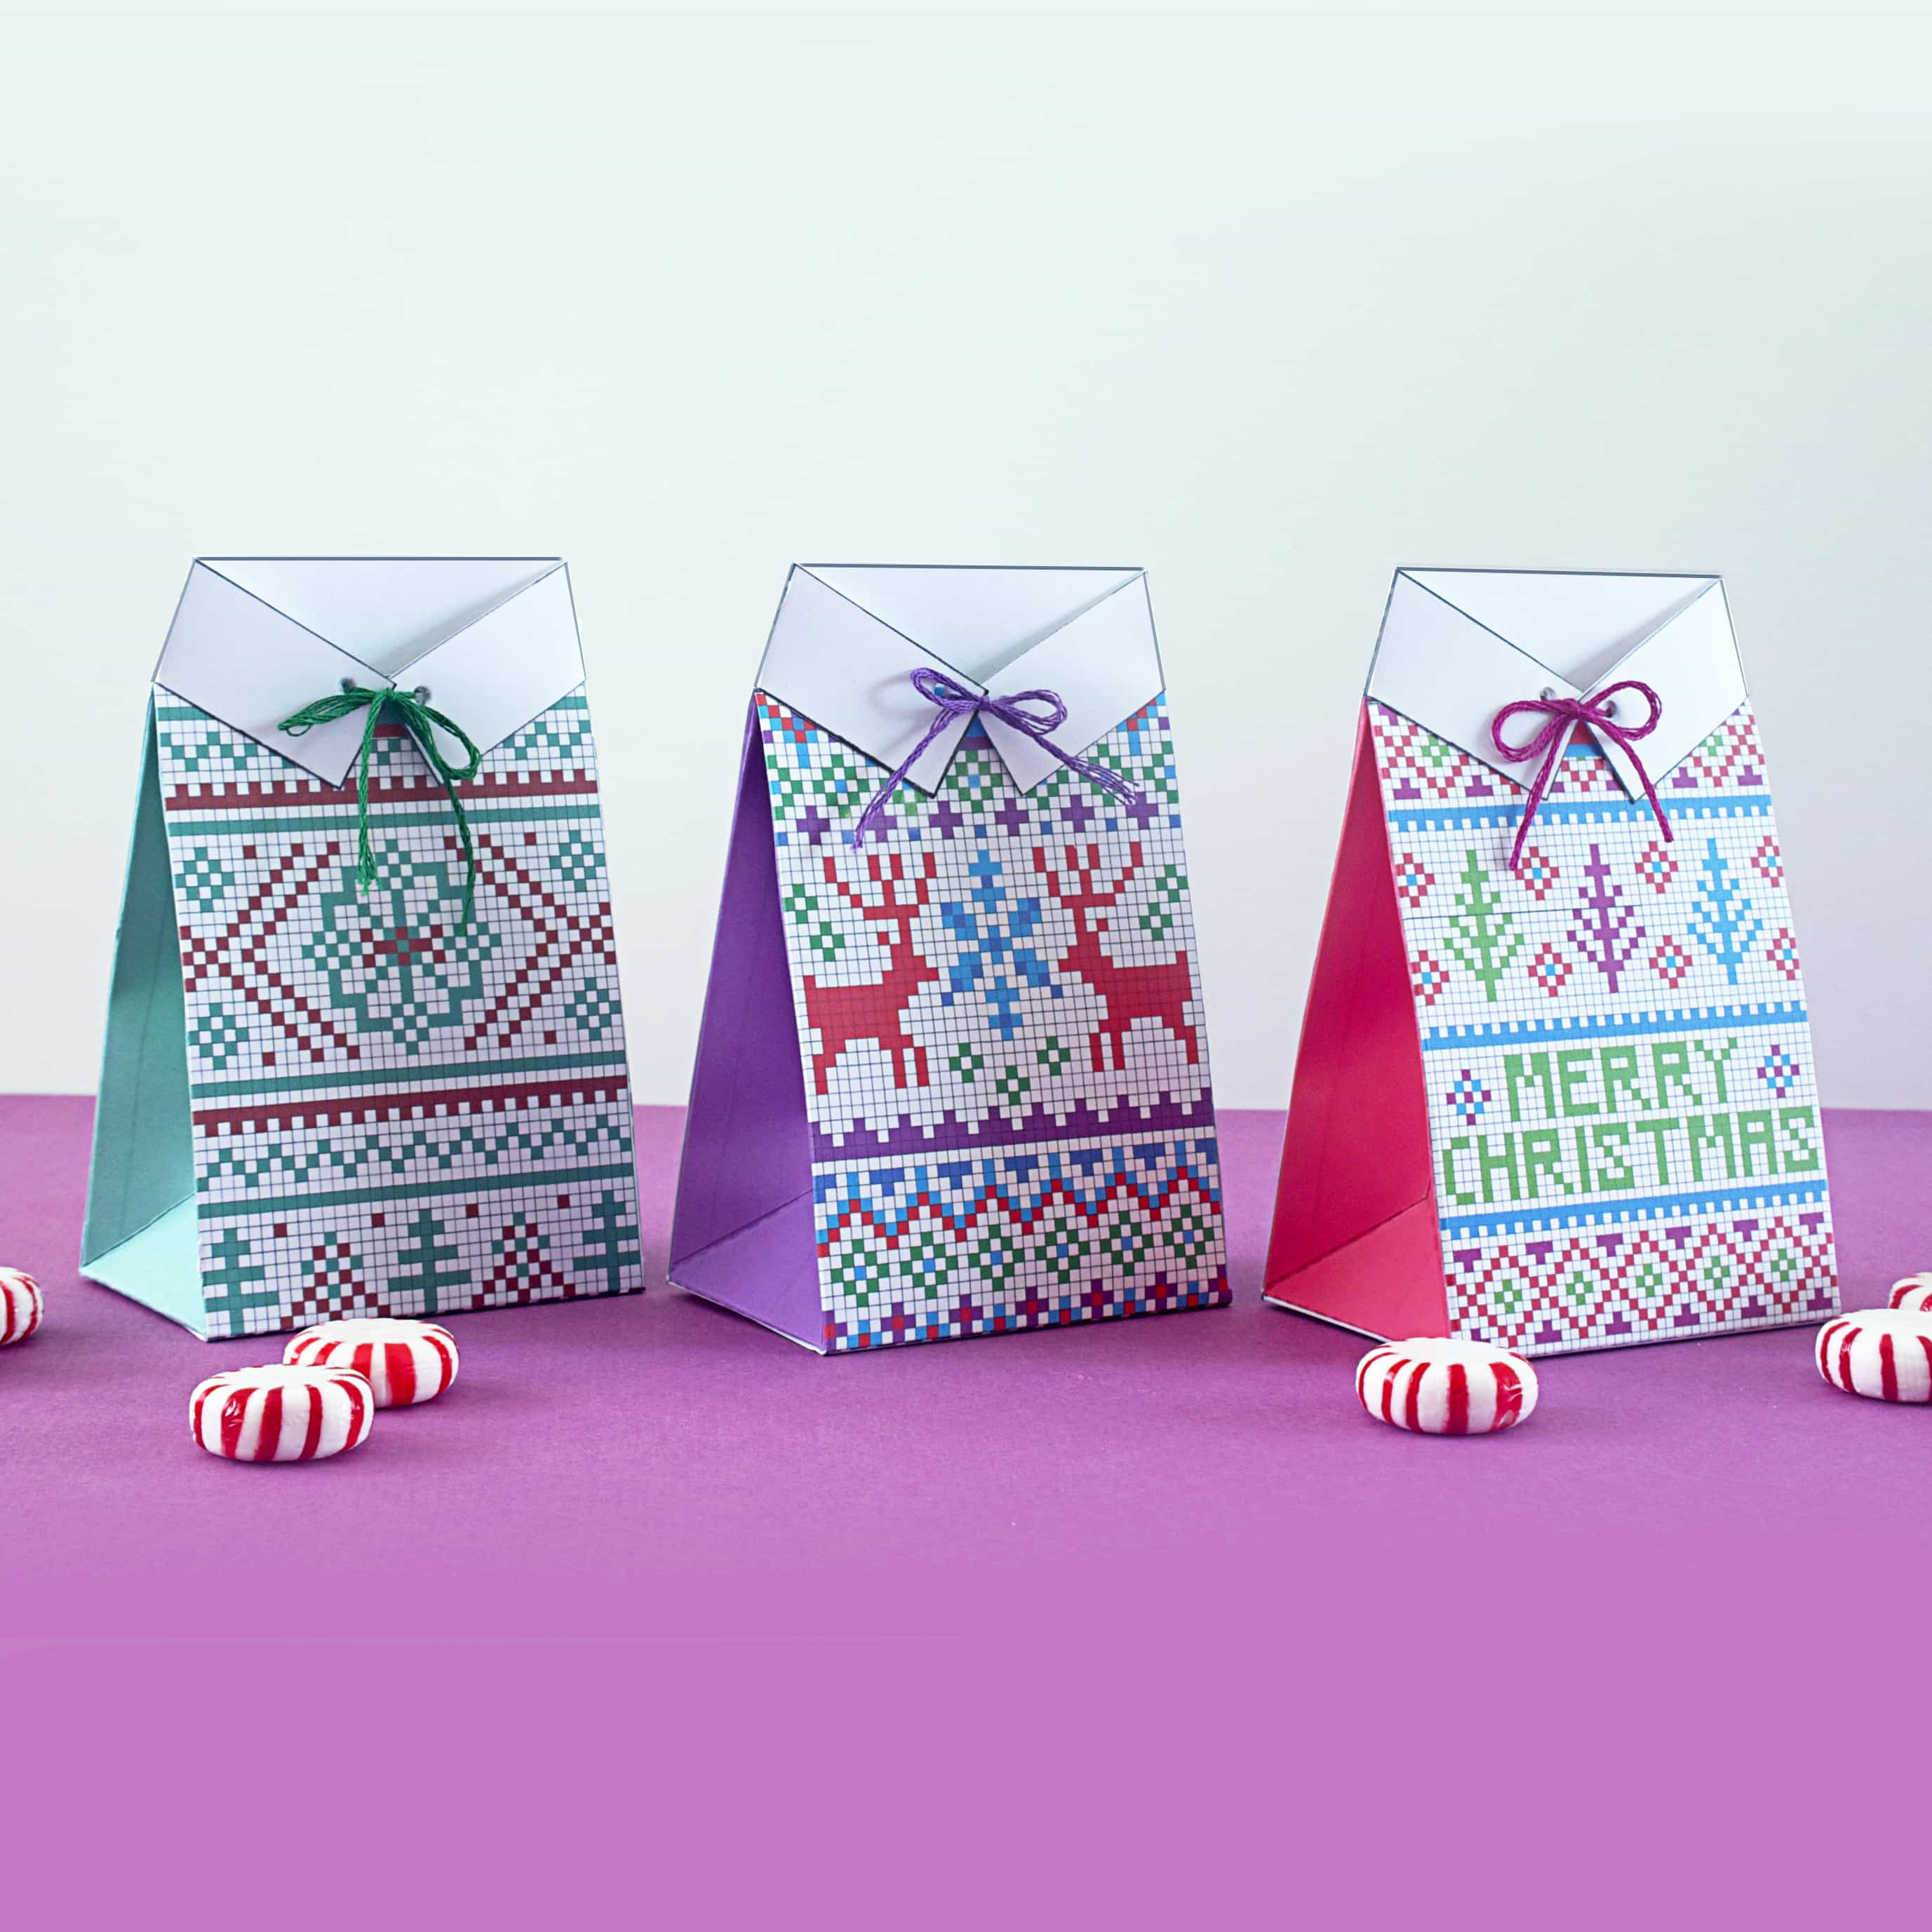 Three sweater treat boxes lined up on a purple tabletop.